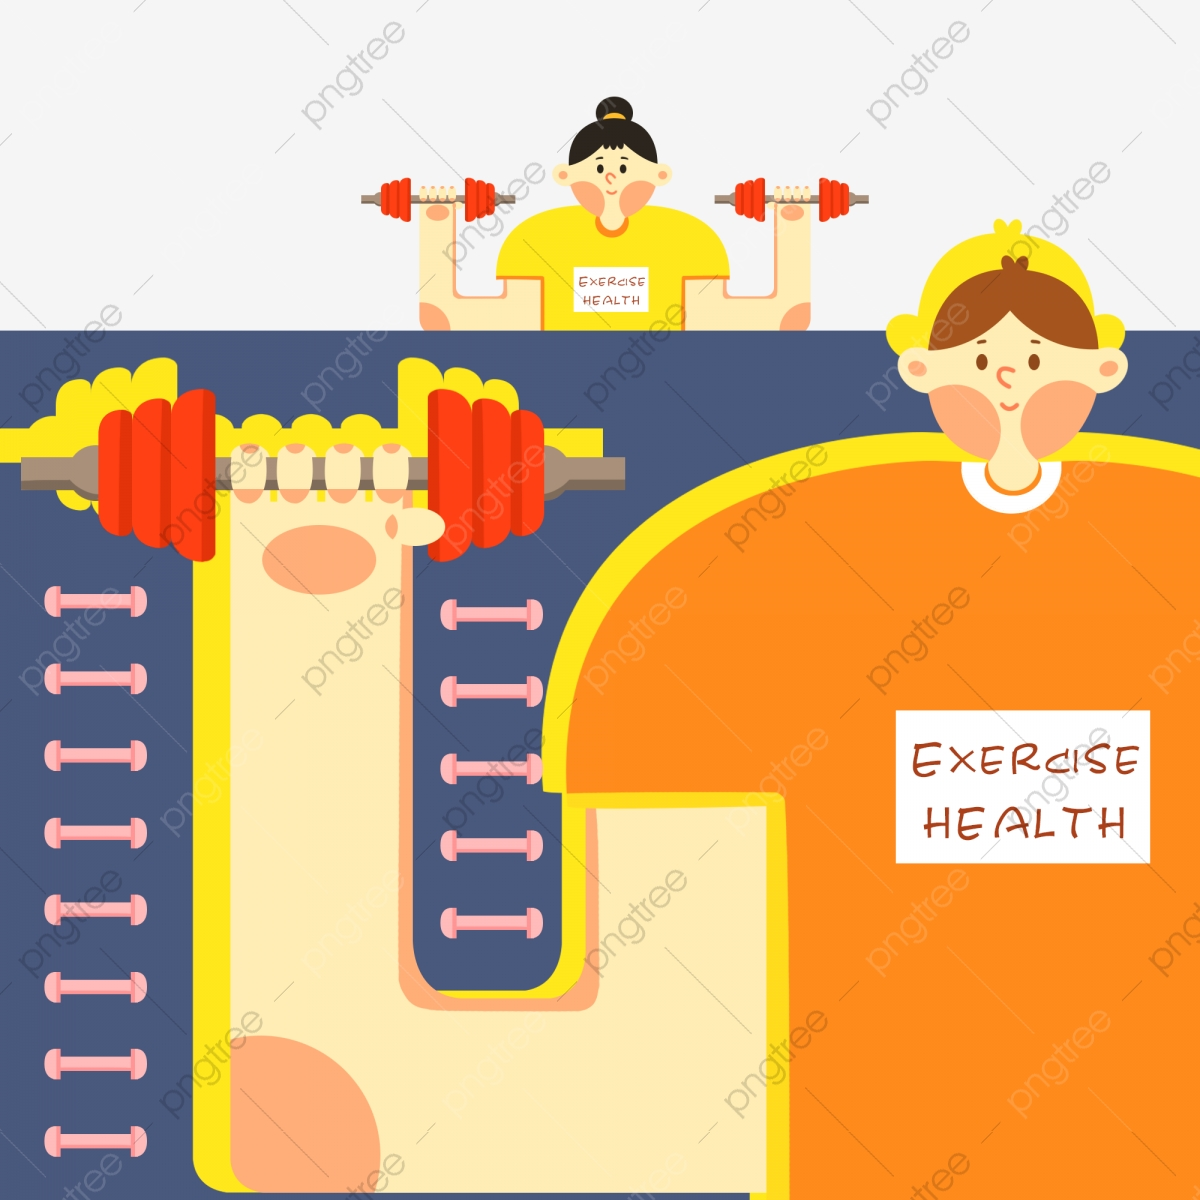 Sport Weight Loss Healthy Male Girl Lifting Dumbbell Illustration Download Dumbbells Net Illustration Png Transparent Clipart Image And Psd File For Free Download